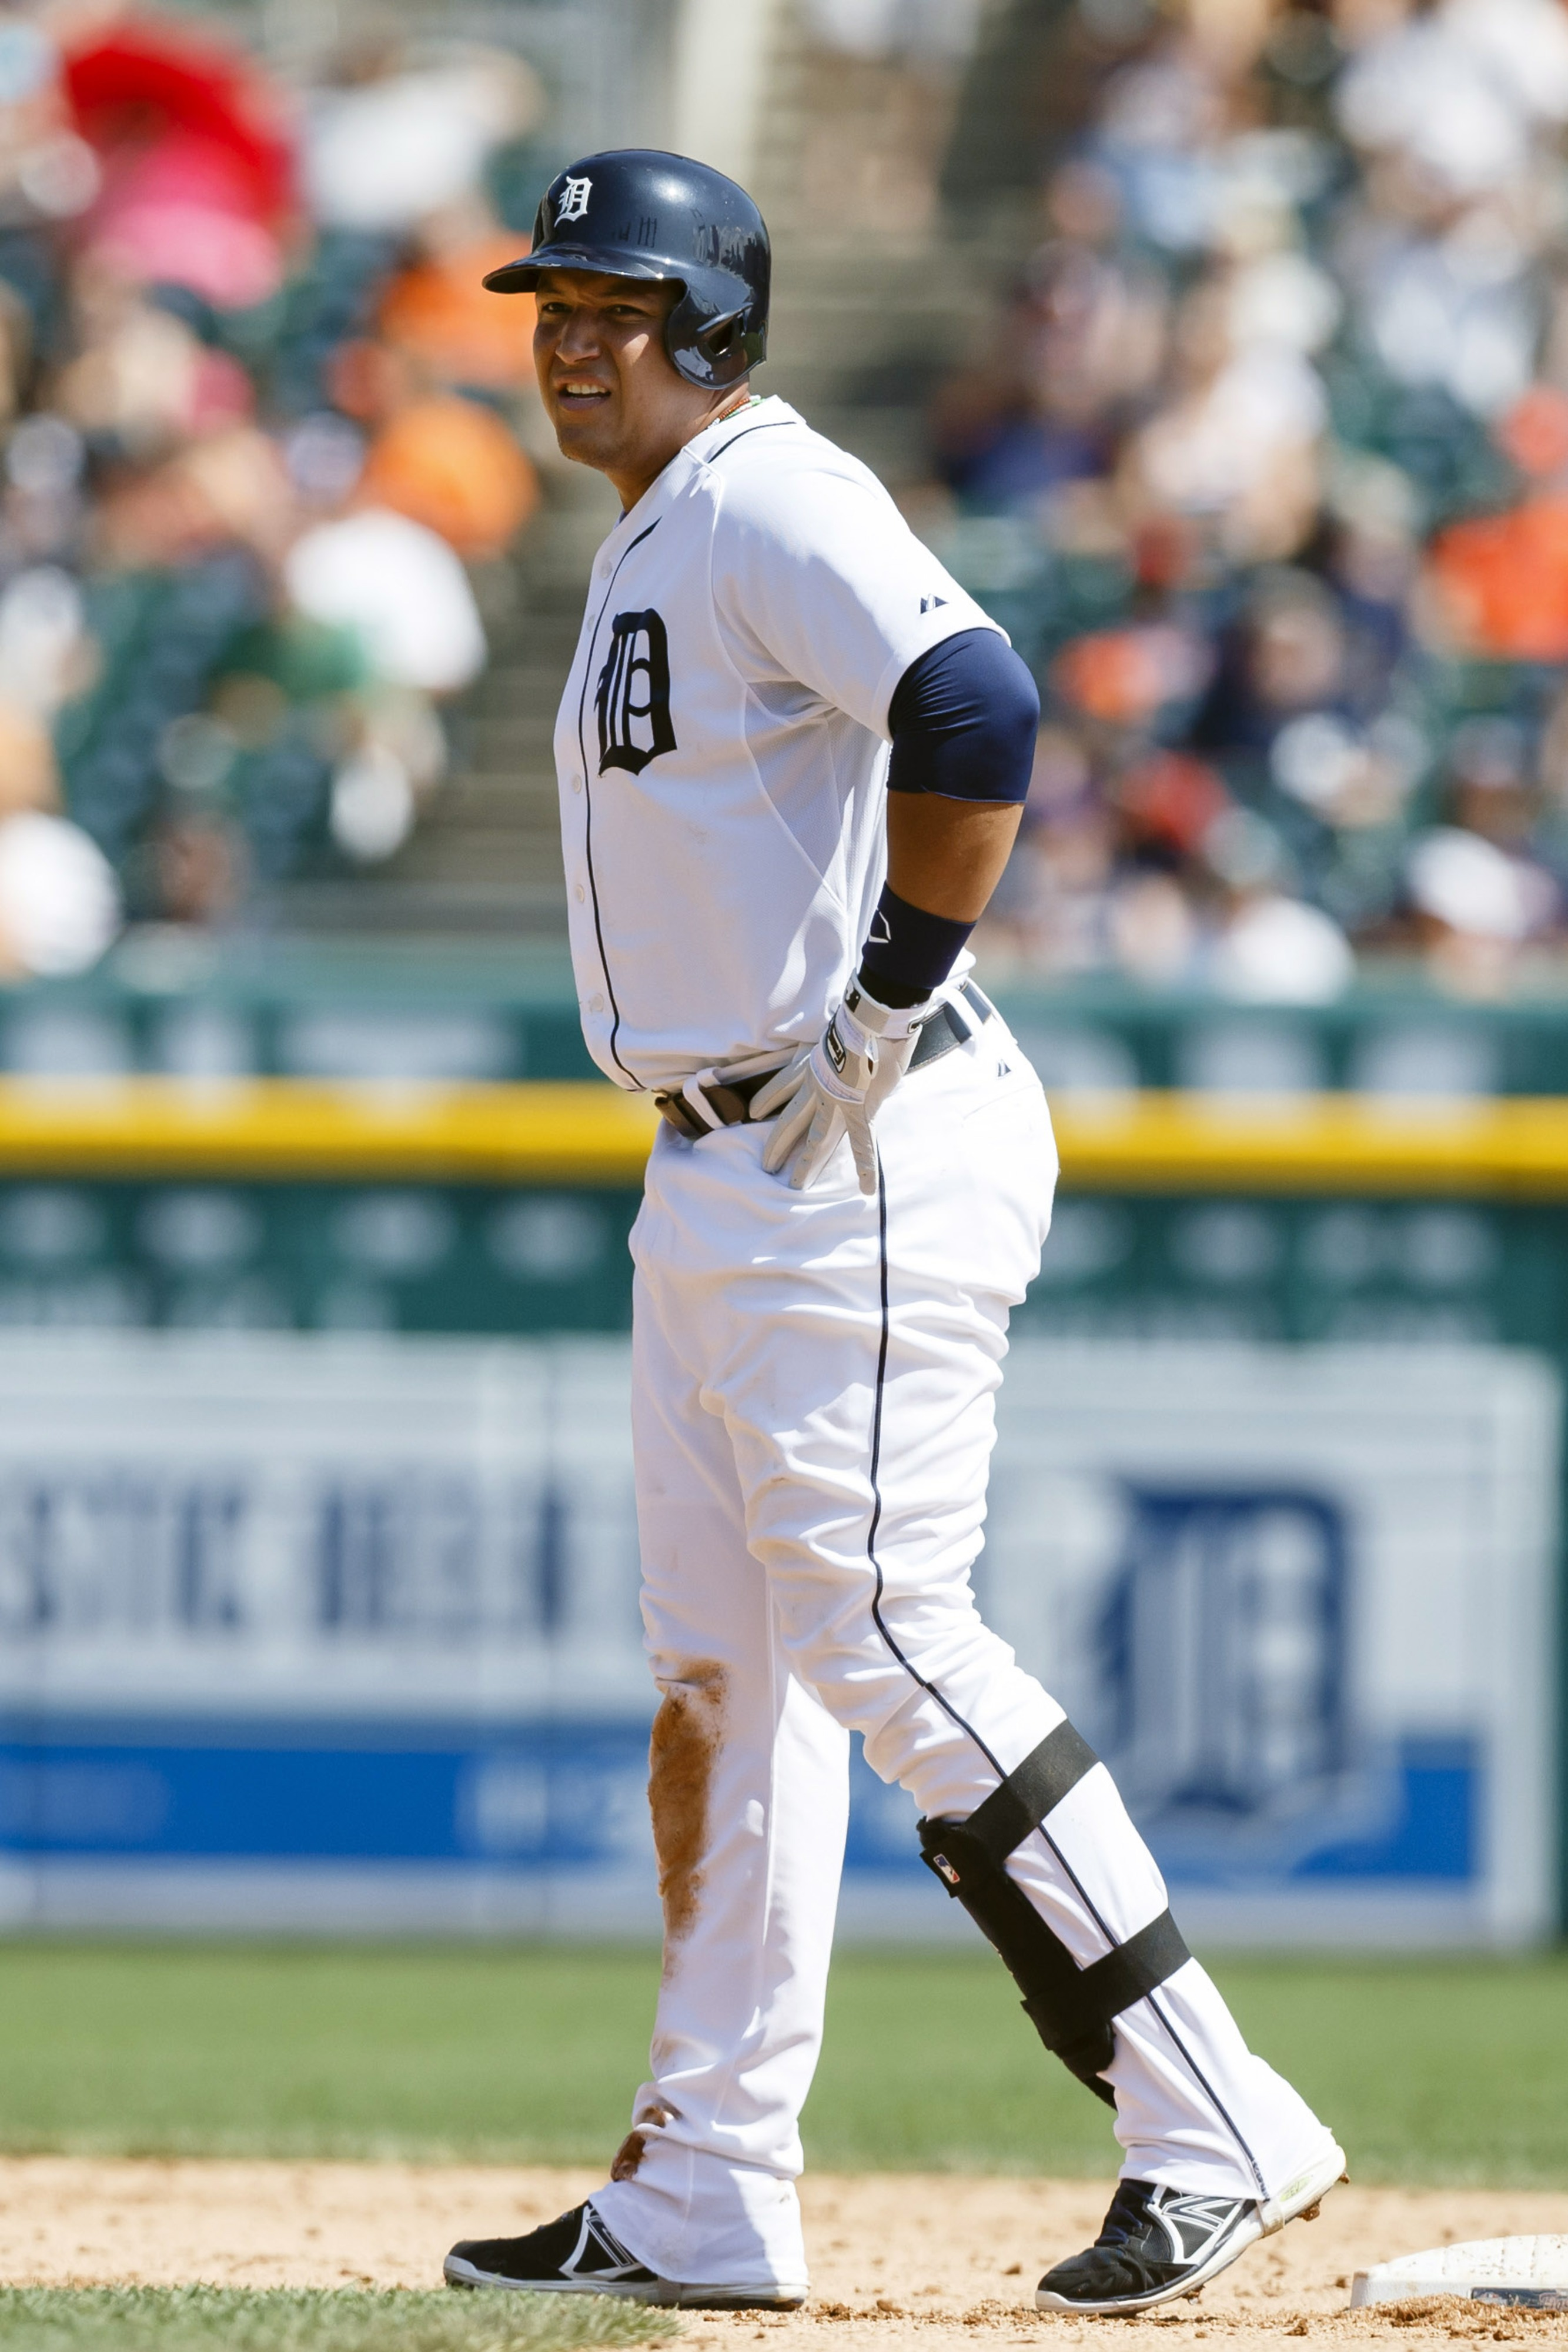 Miguel Cabrera injury: Tigers 3B exits with irritation in abdominal area